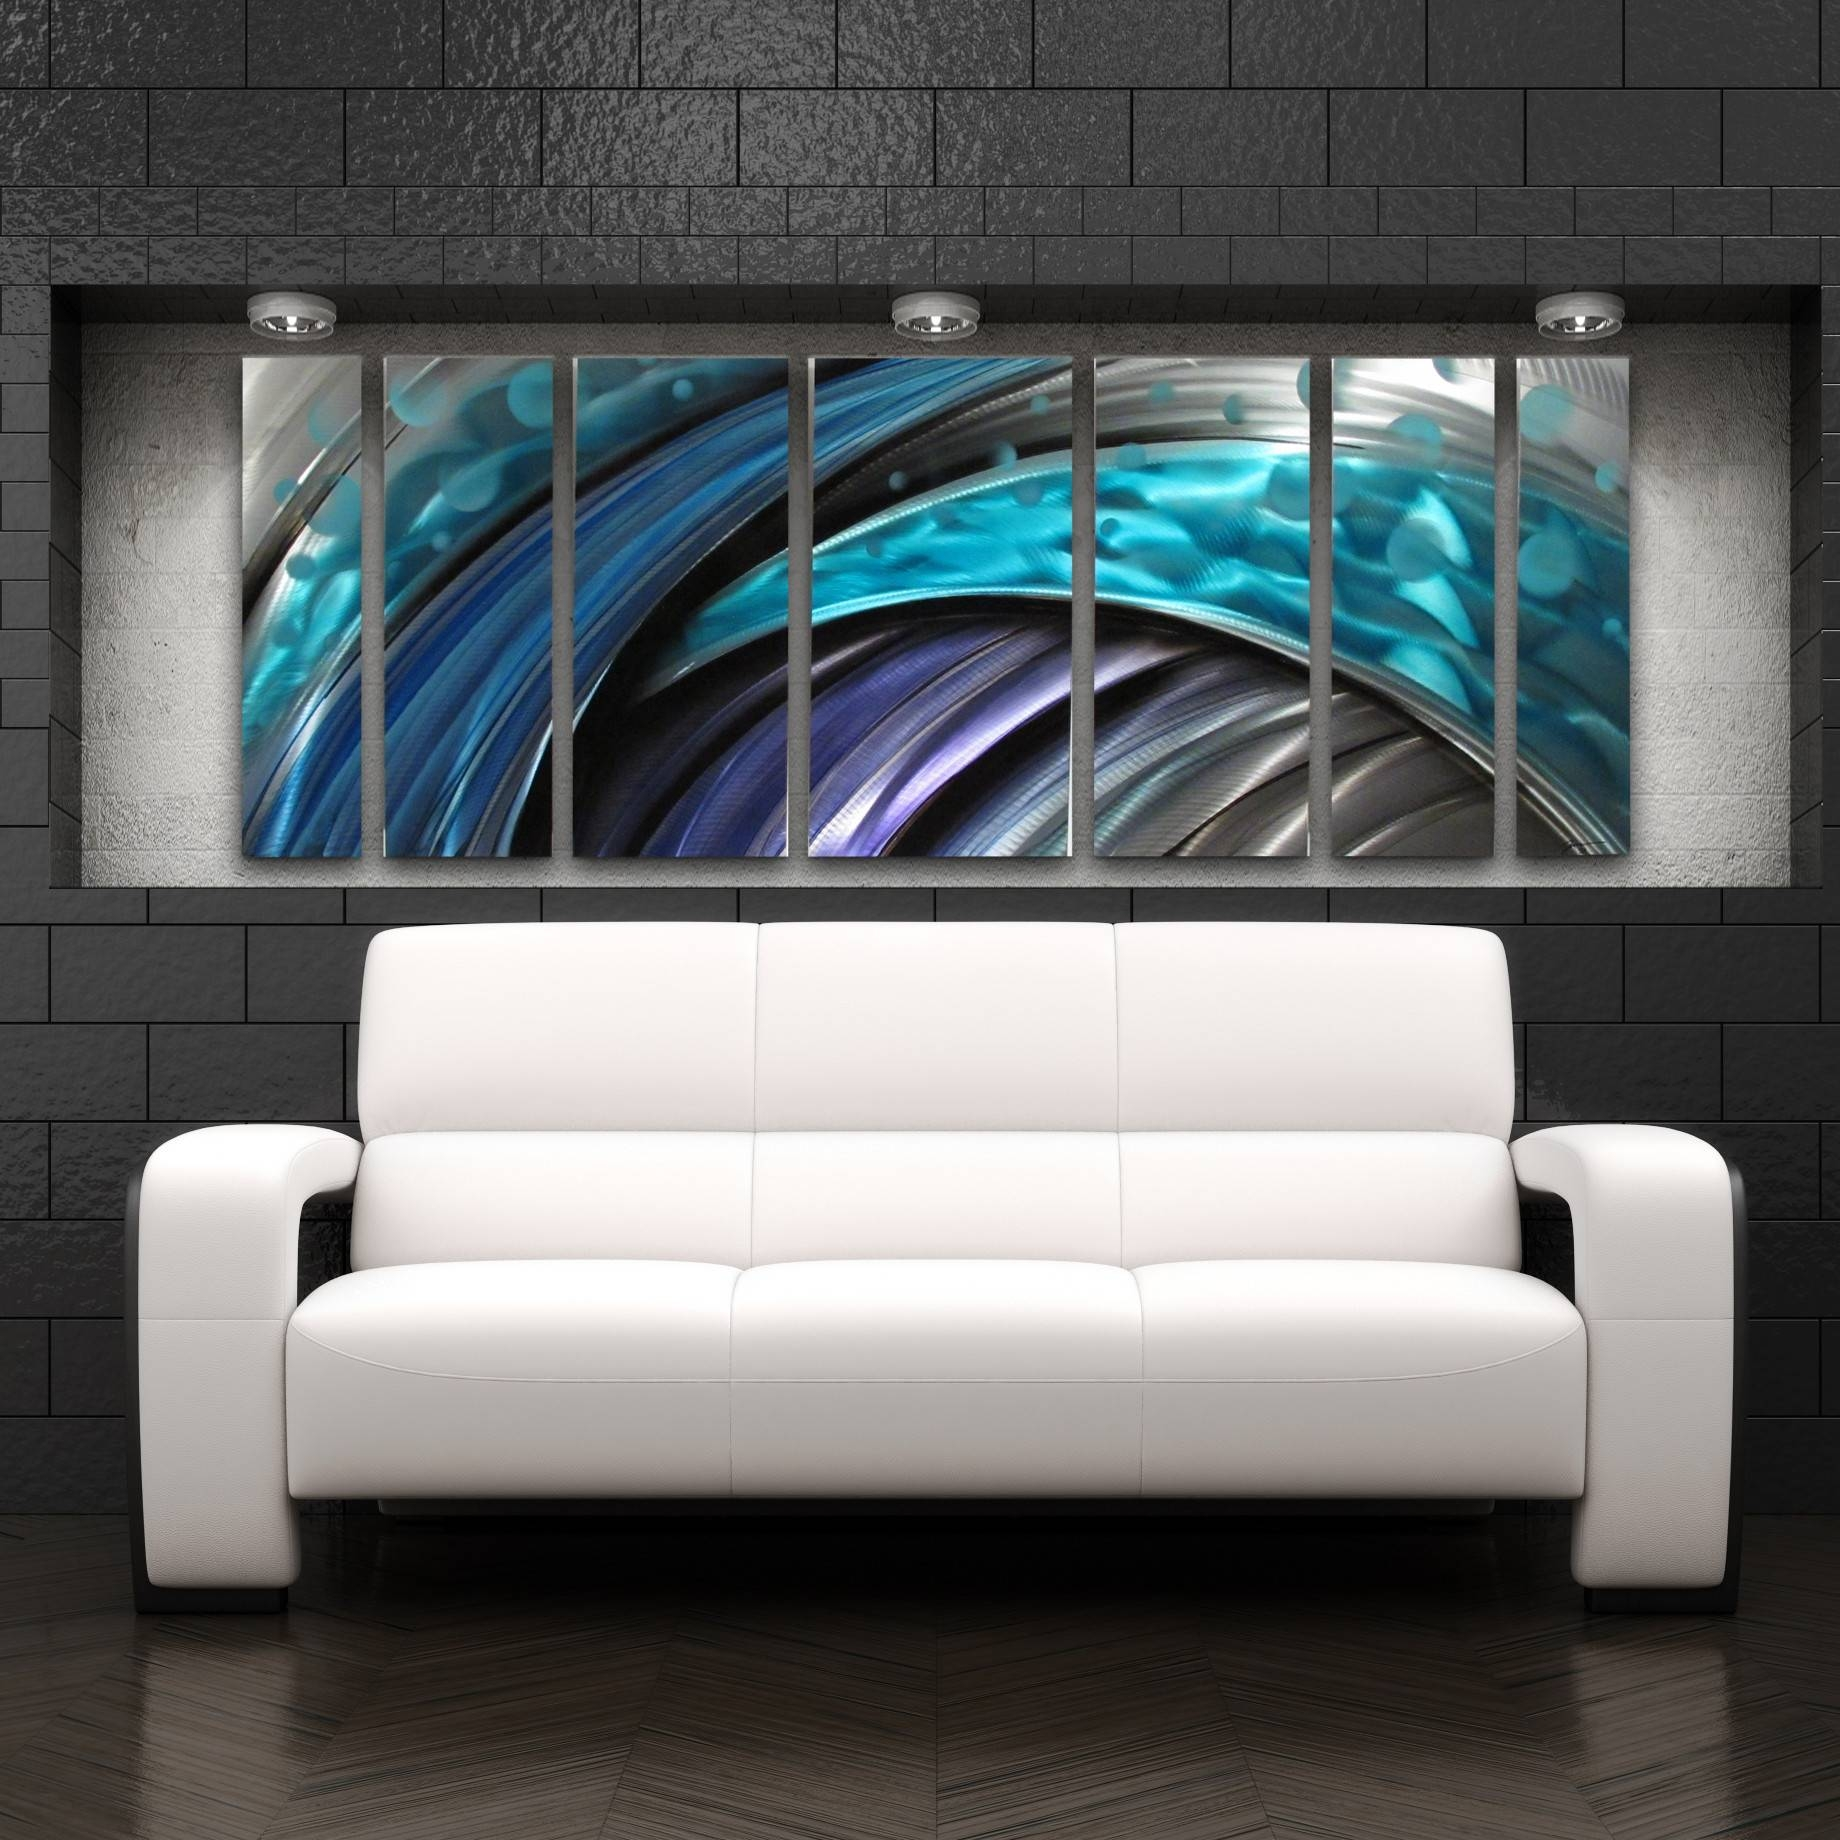 Unbelievable Large Modern Wall Art Excellent Ideas Large With Most Up To Date Large Contemporary Wall Art (View 7 of 20)